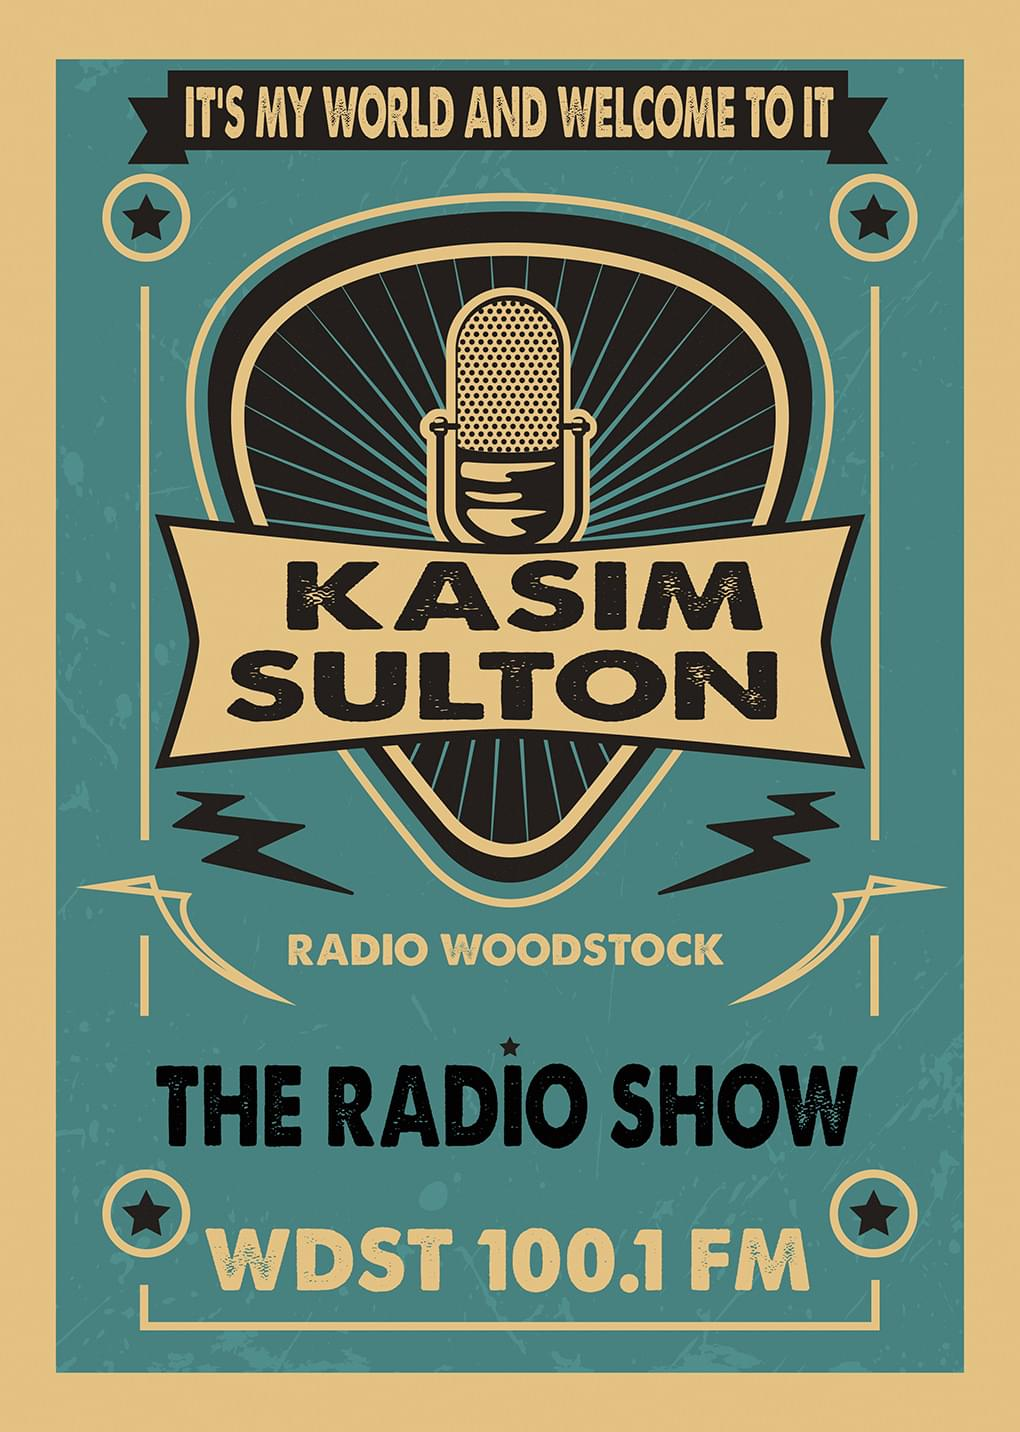 It's My World & Welcome to It with Kasim Sulton